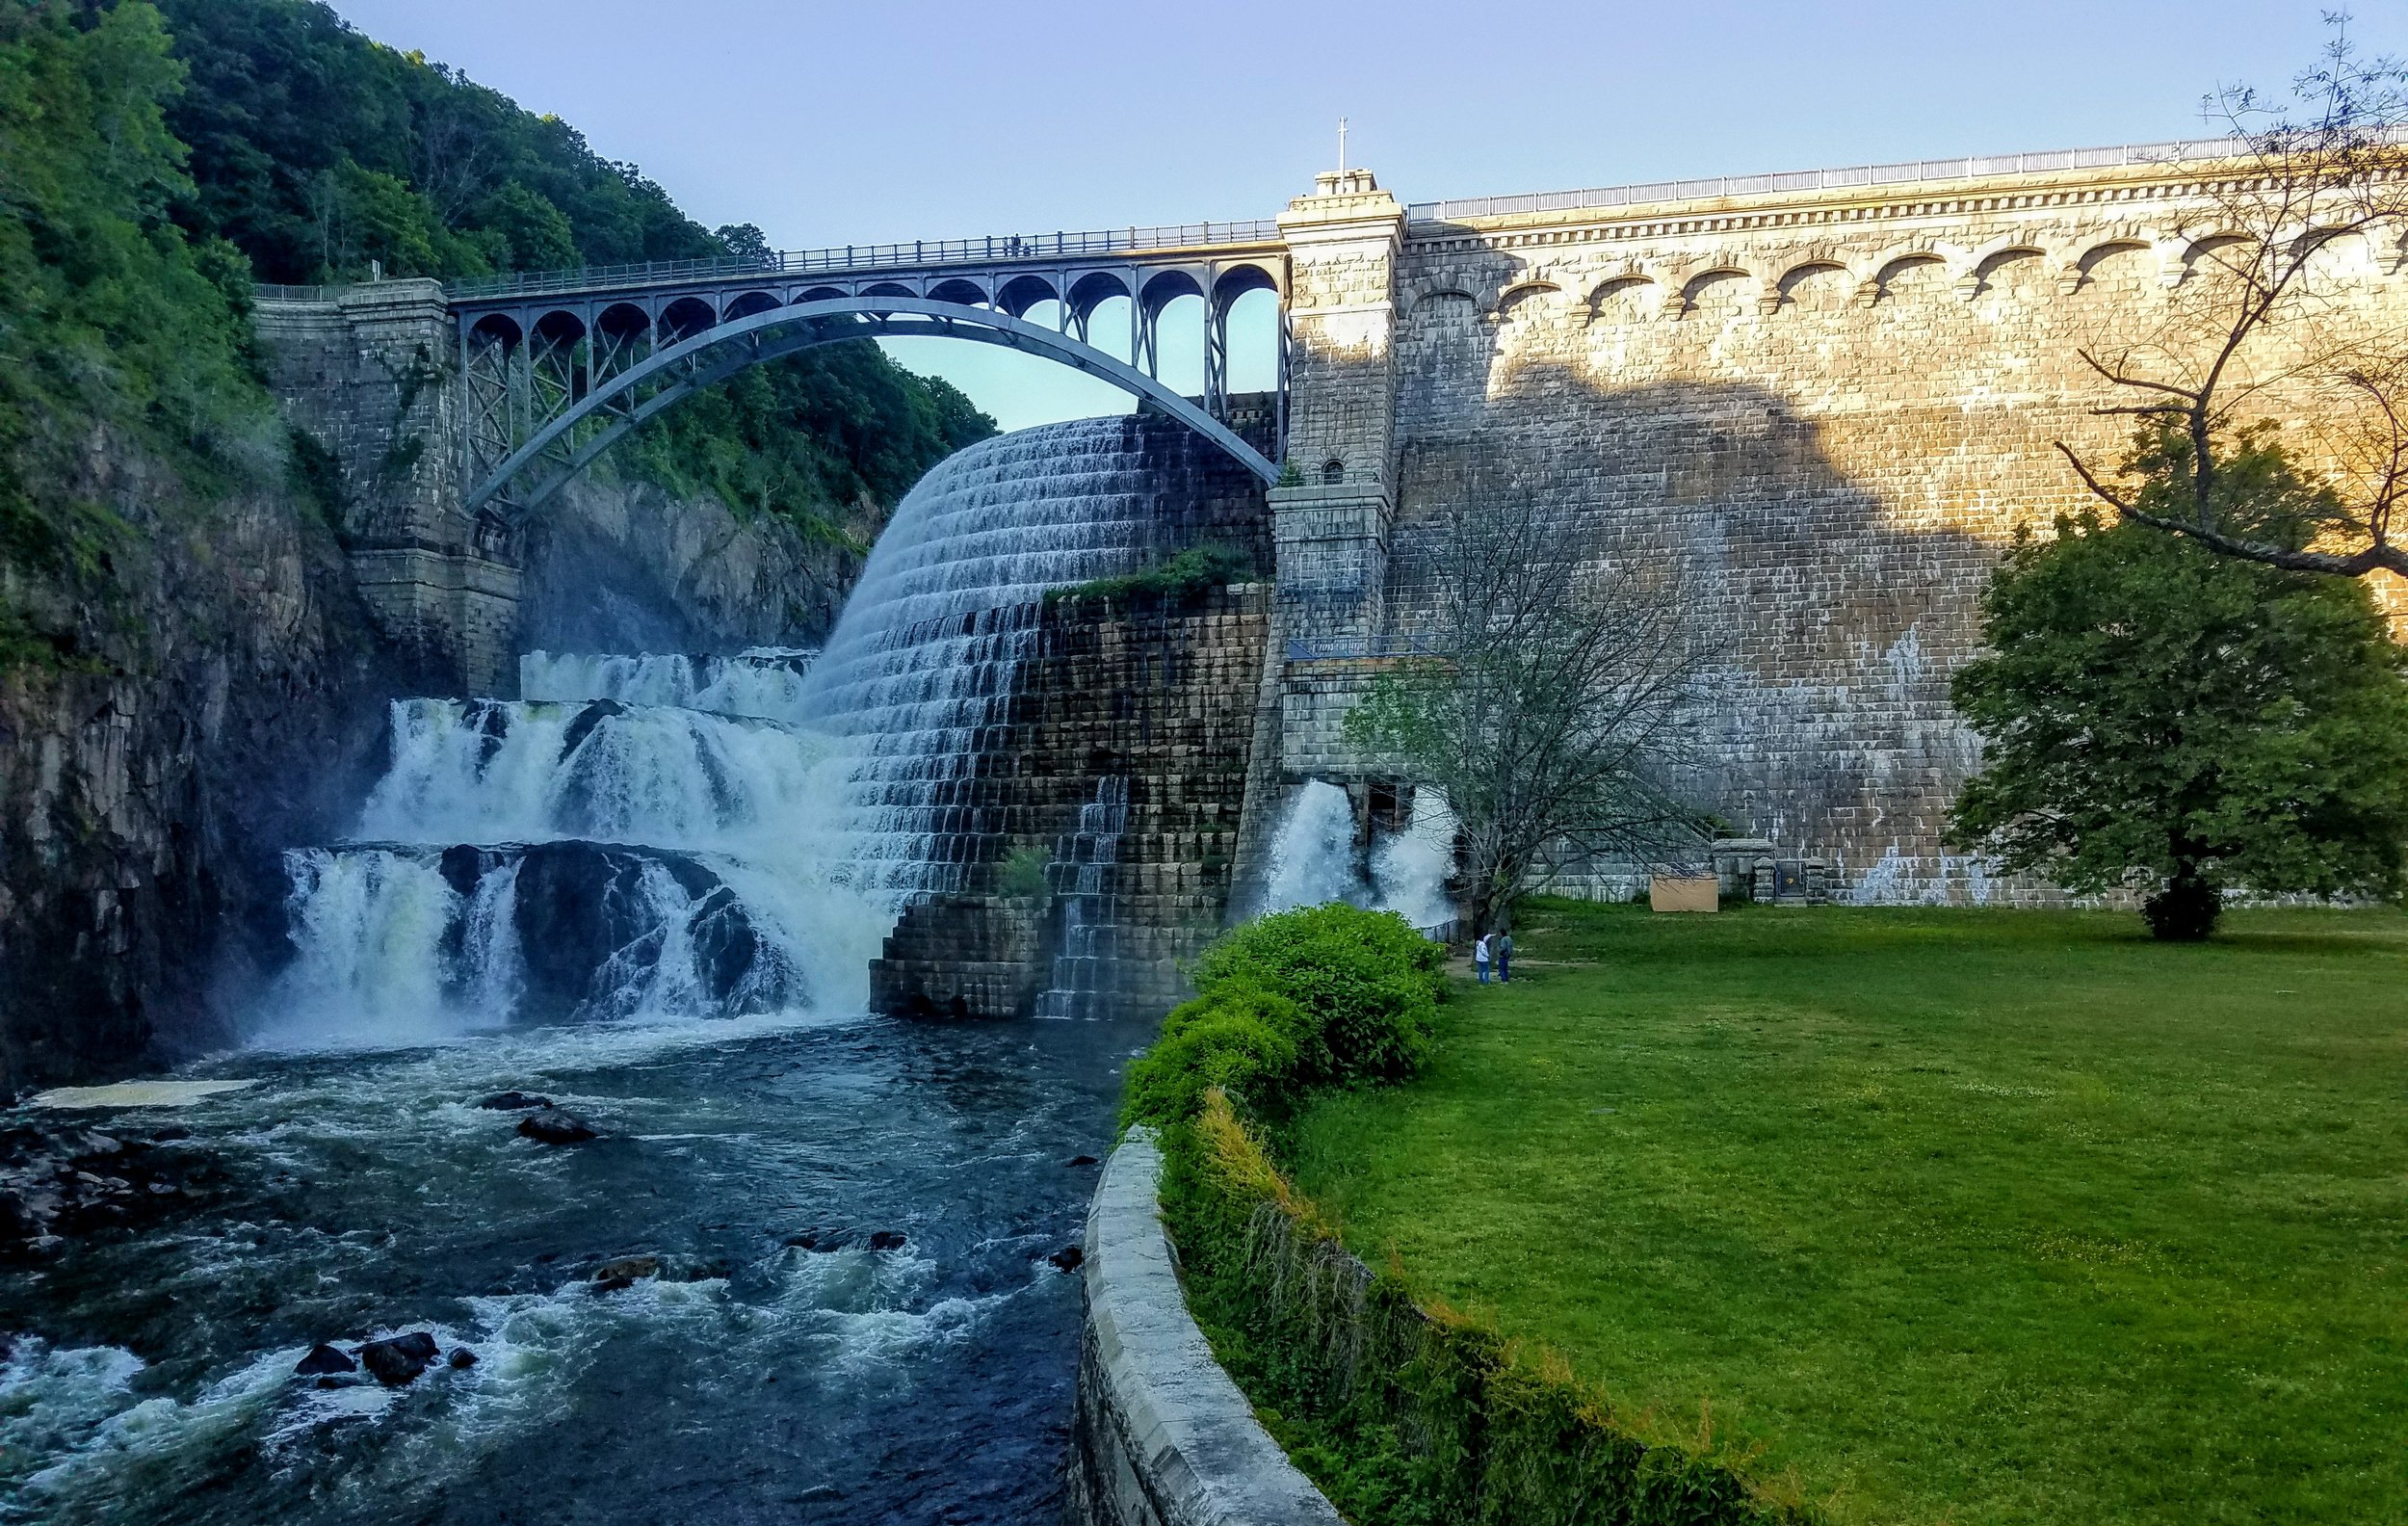 The Cornell (New Croton) Dam/Aqueduct, 81 nautical miles up the Hudson ,provides water for NYC. An engineering marvel built in 1892